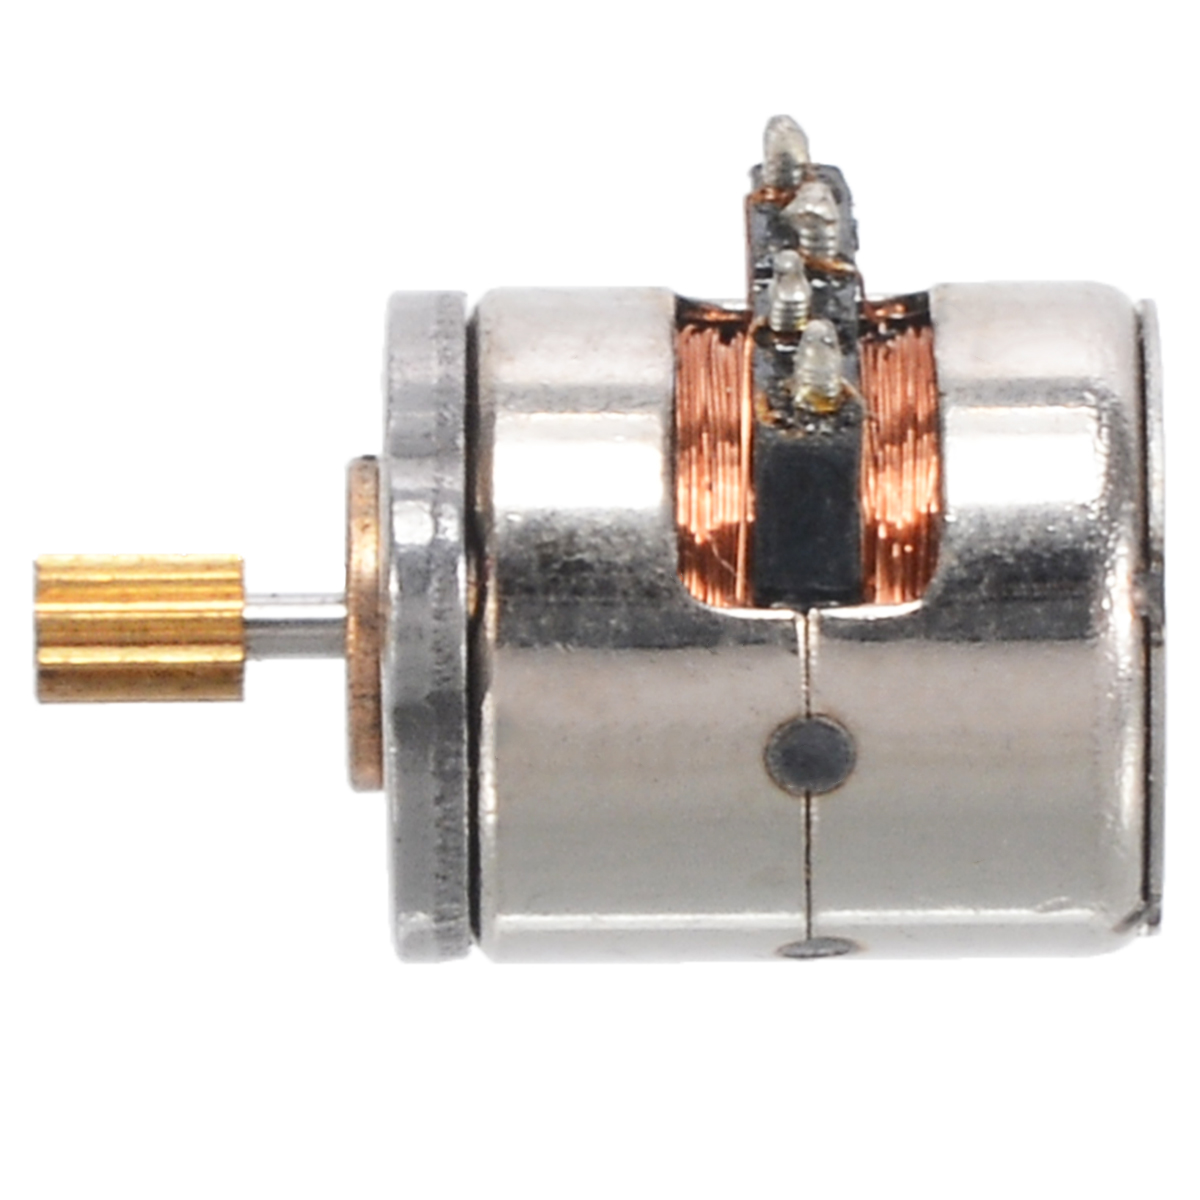 1Pcs Mini Micro Stepper Motor 2-phase 4-wire Stepper Motor With Copper Gear 8x9.2mm For Motor Parts Accessories